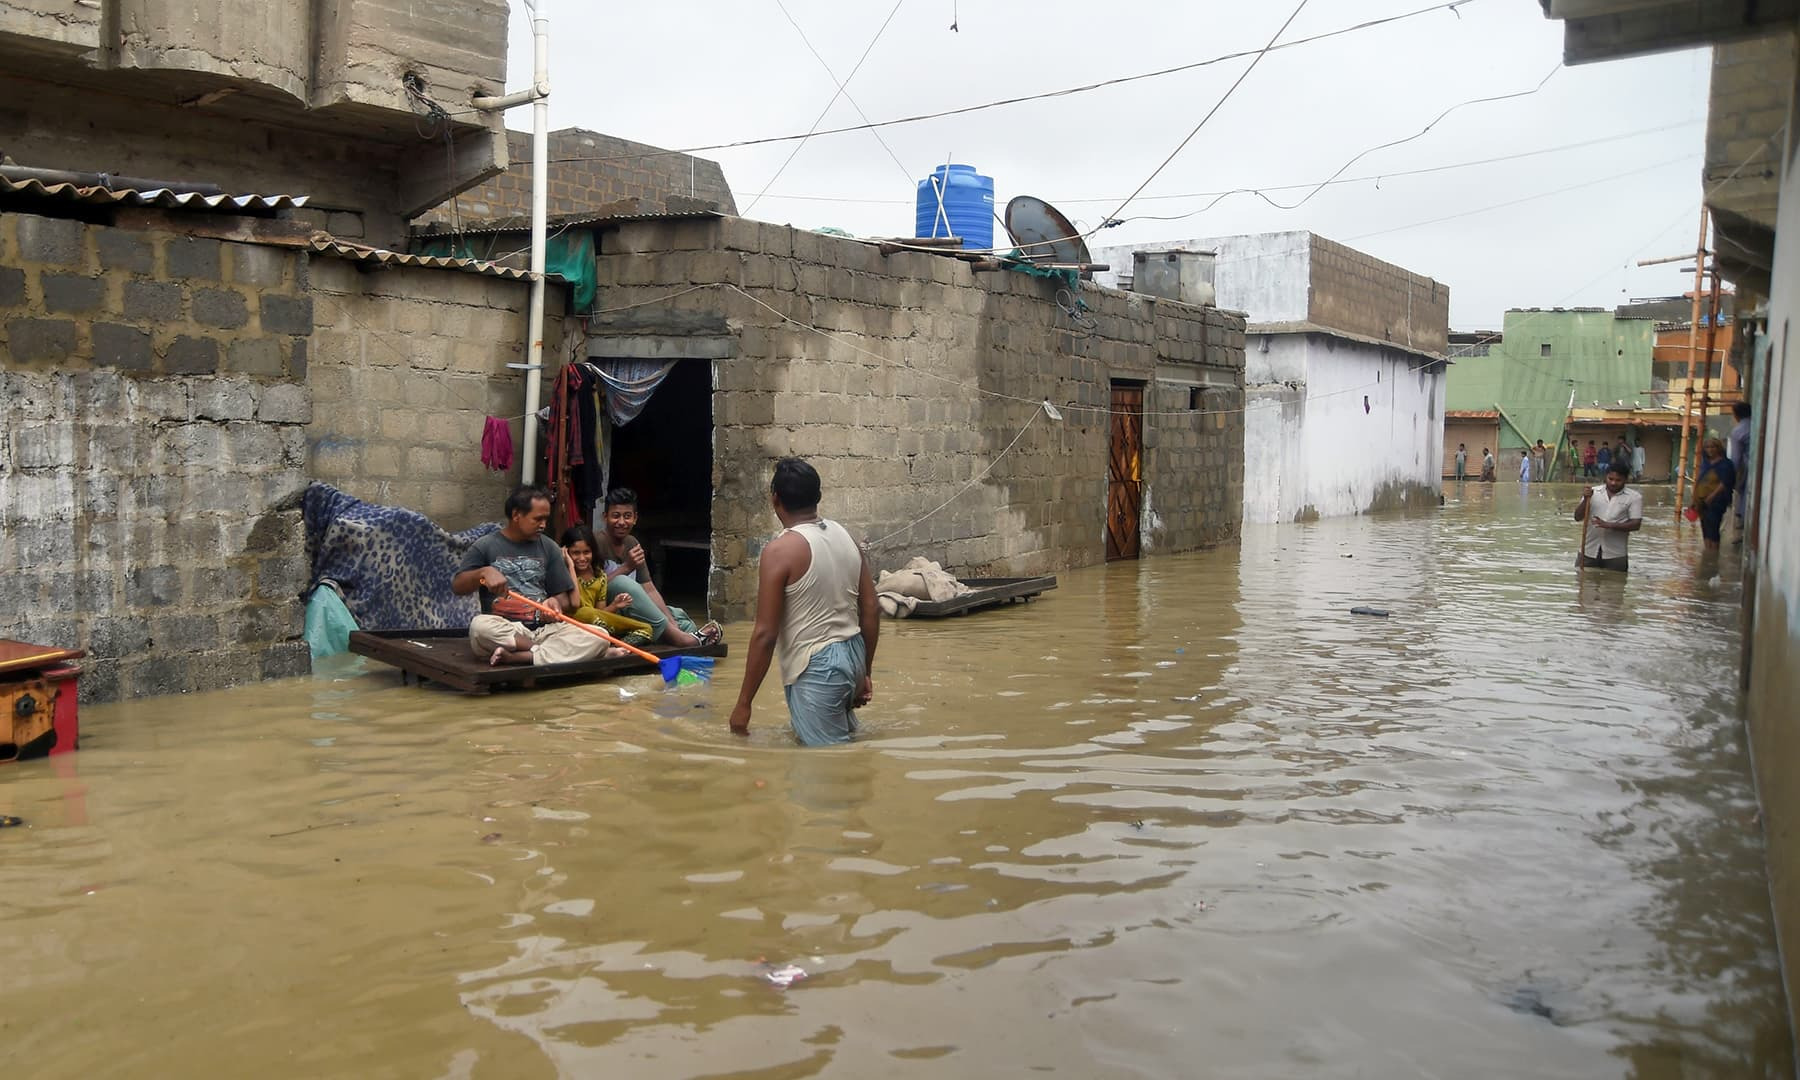 Residents sit on a cart outside their house submerge in flood waters during heavy monsoon rains in Karachi on Tuesday. — AFP